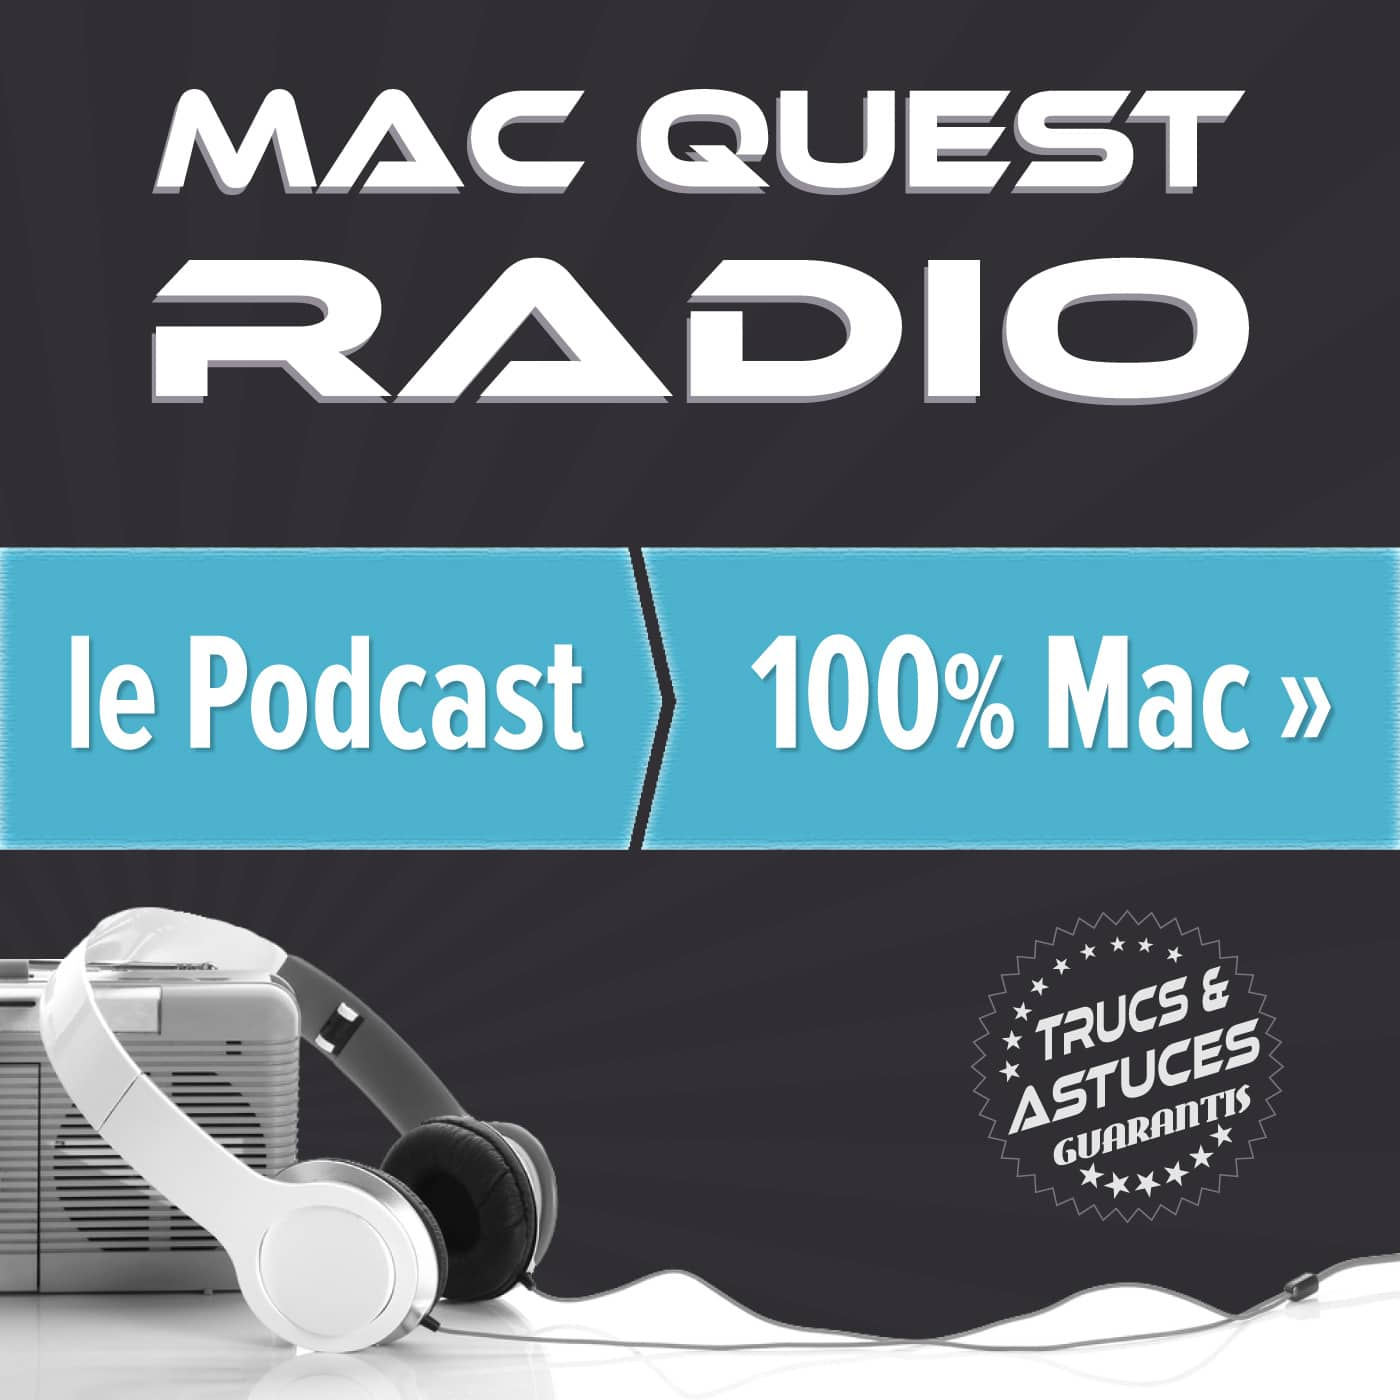 Mac quest Radio